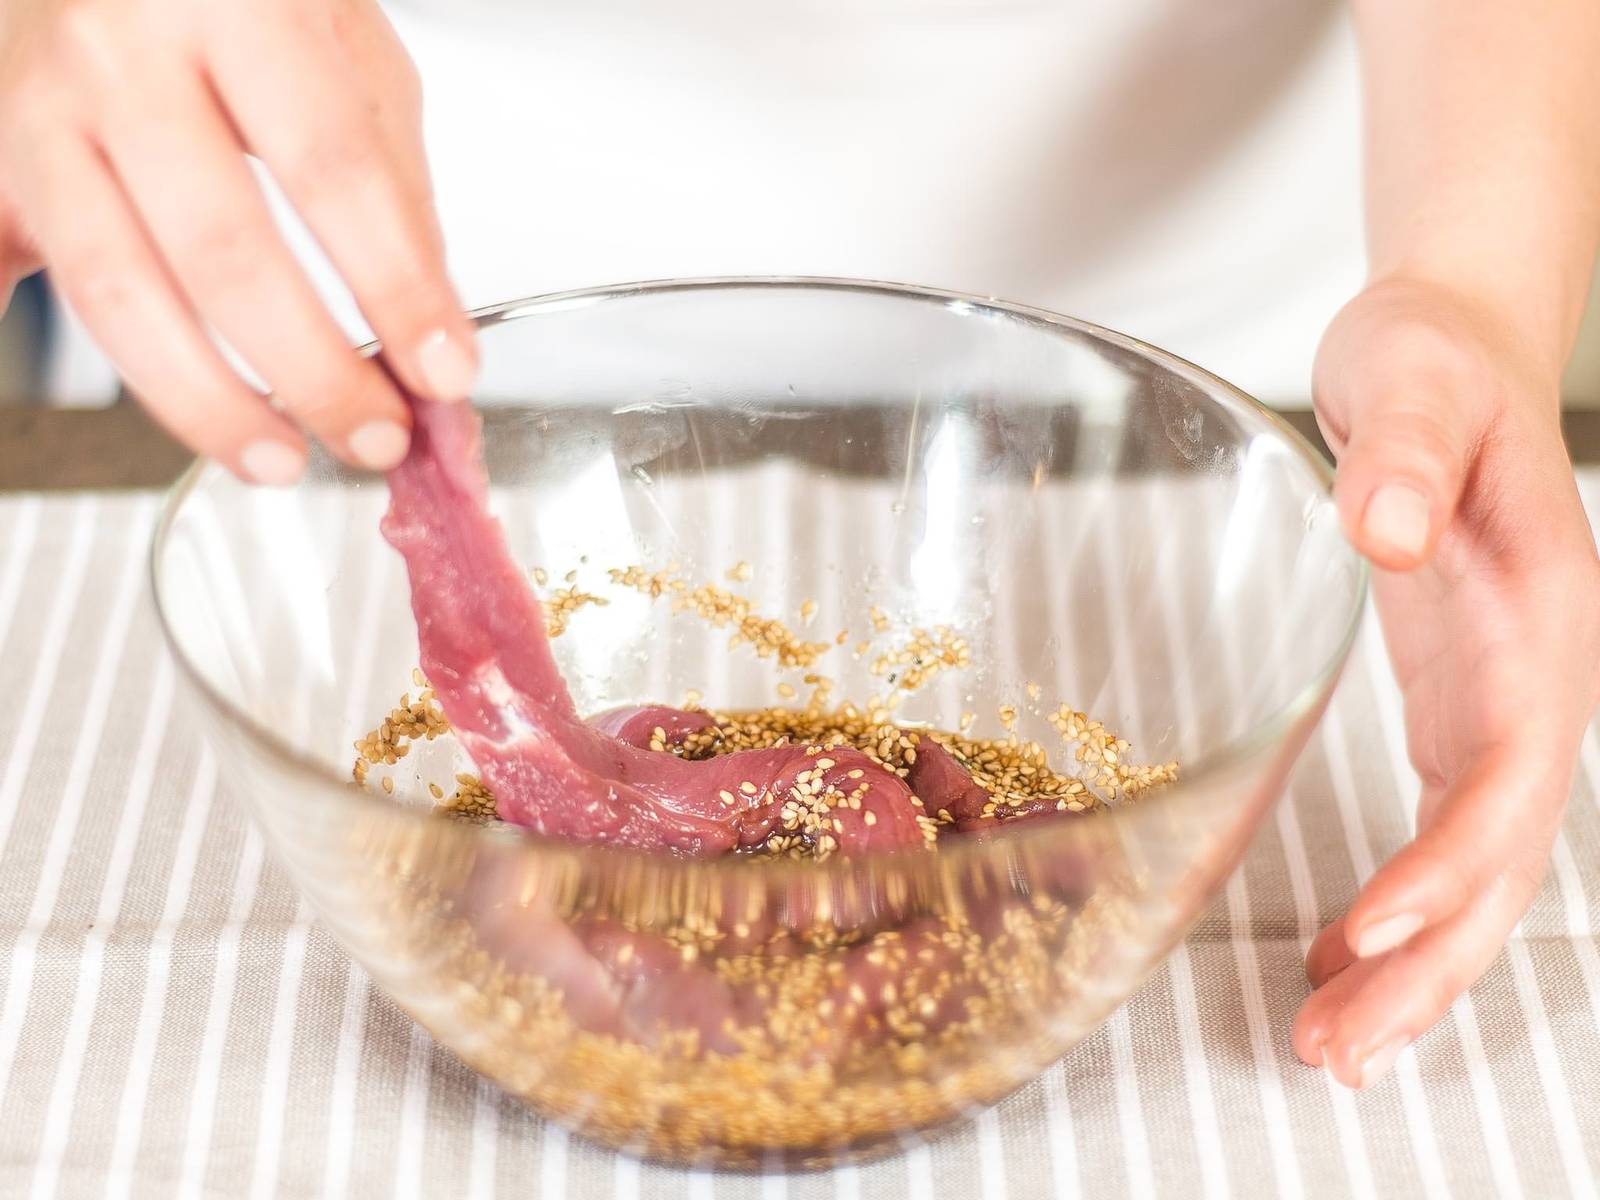 For the marinade, mix together the roasted sesame seeds, soy sauce, half of the grated ginger, honey, salt, and pepper. Leave the duck breast in the marinade for approx 5 - 10 min.